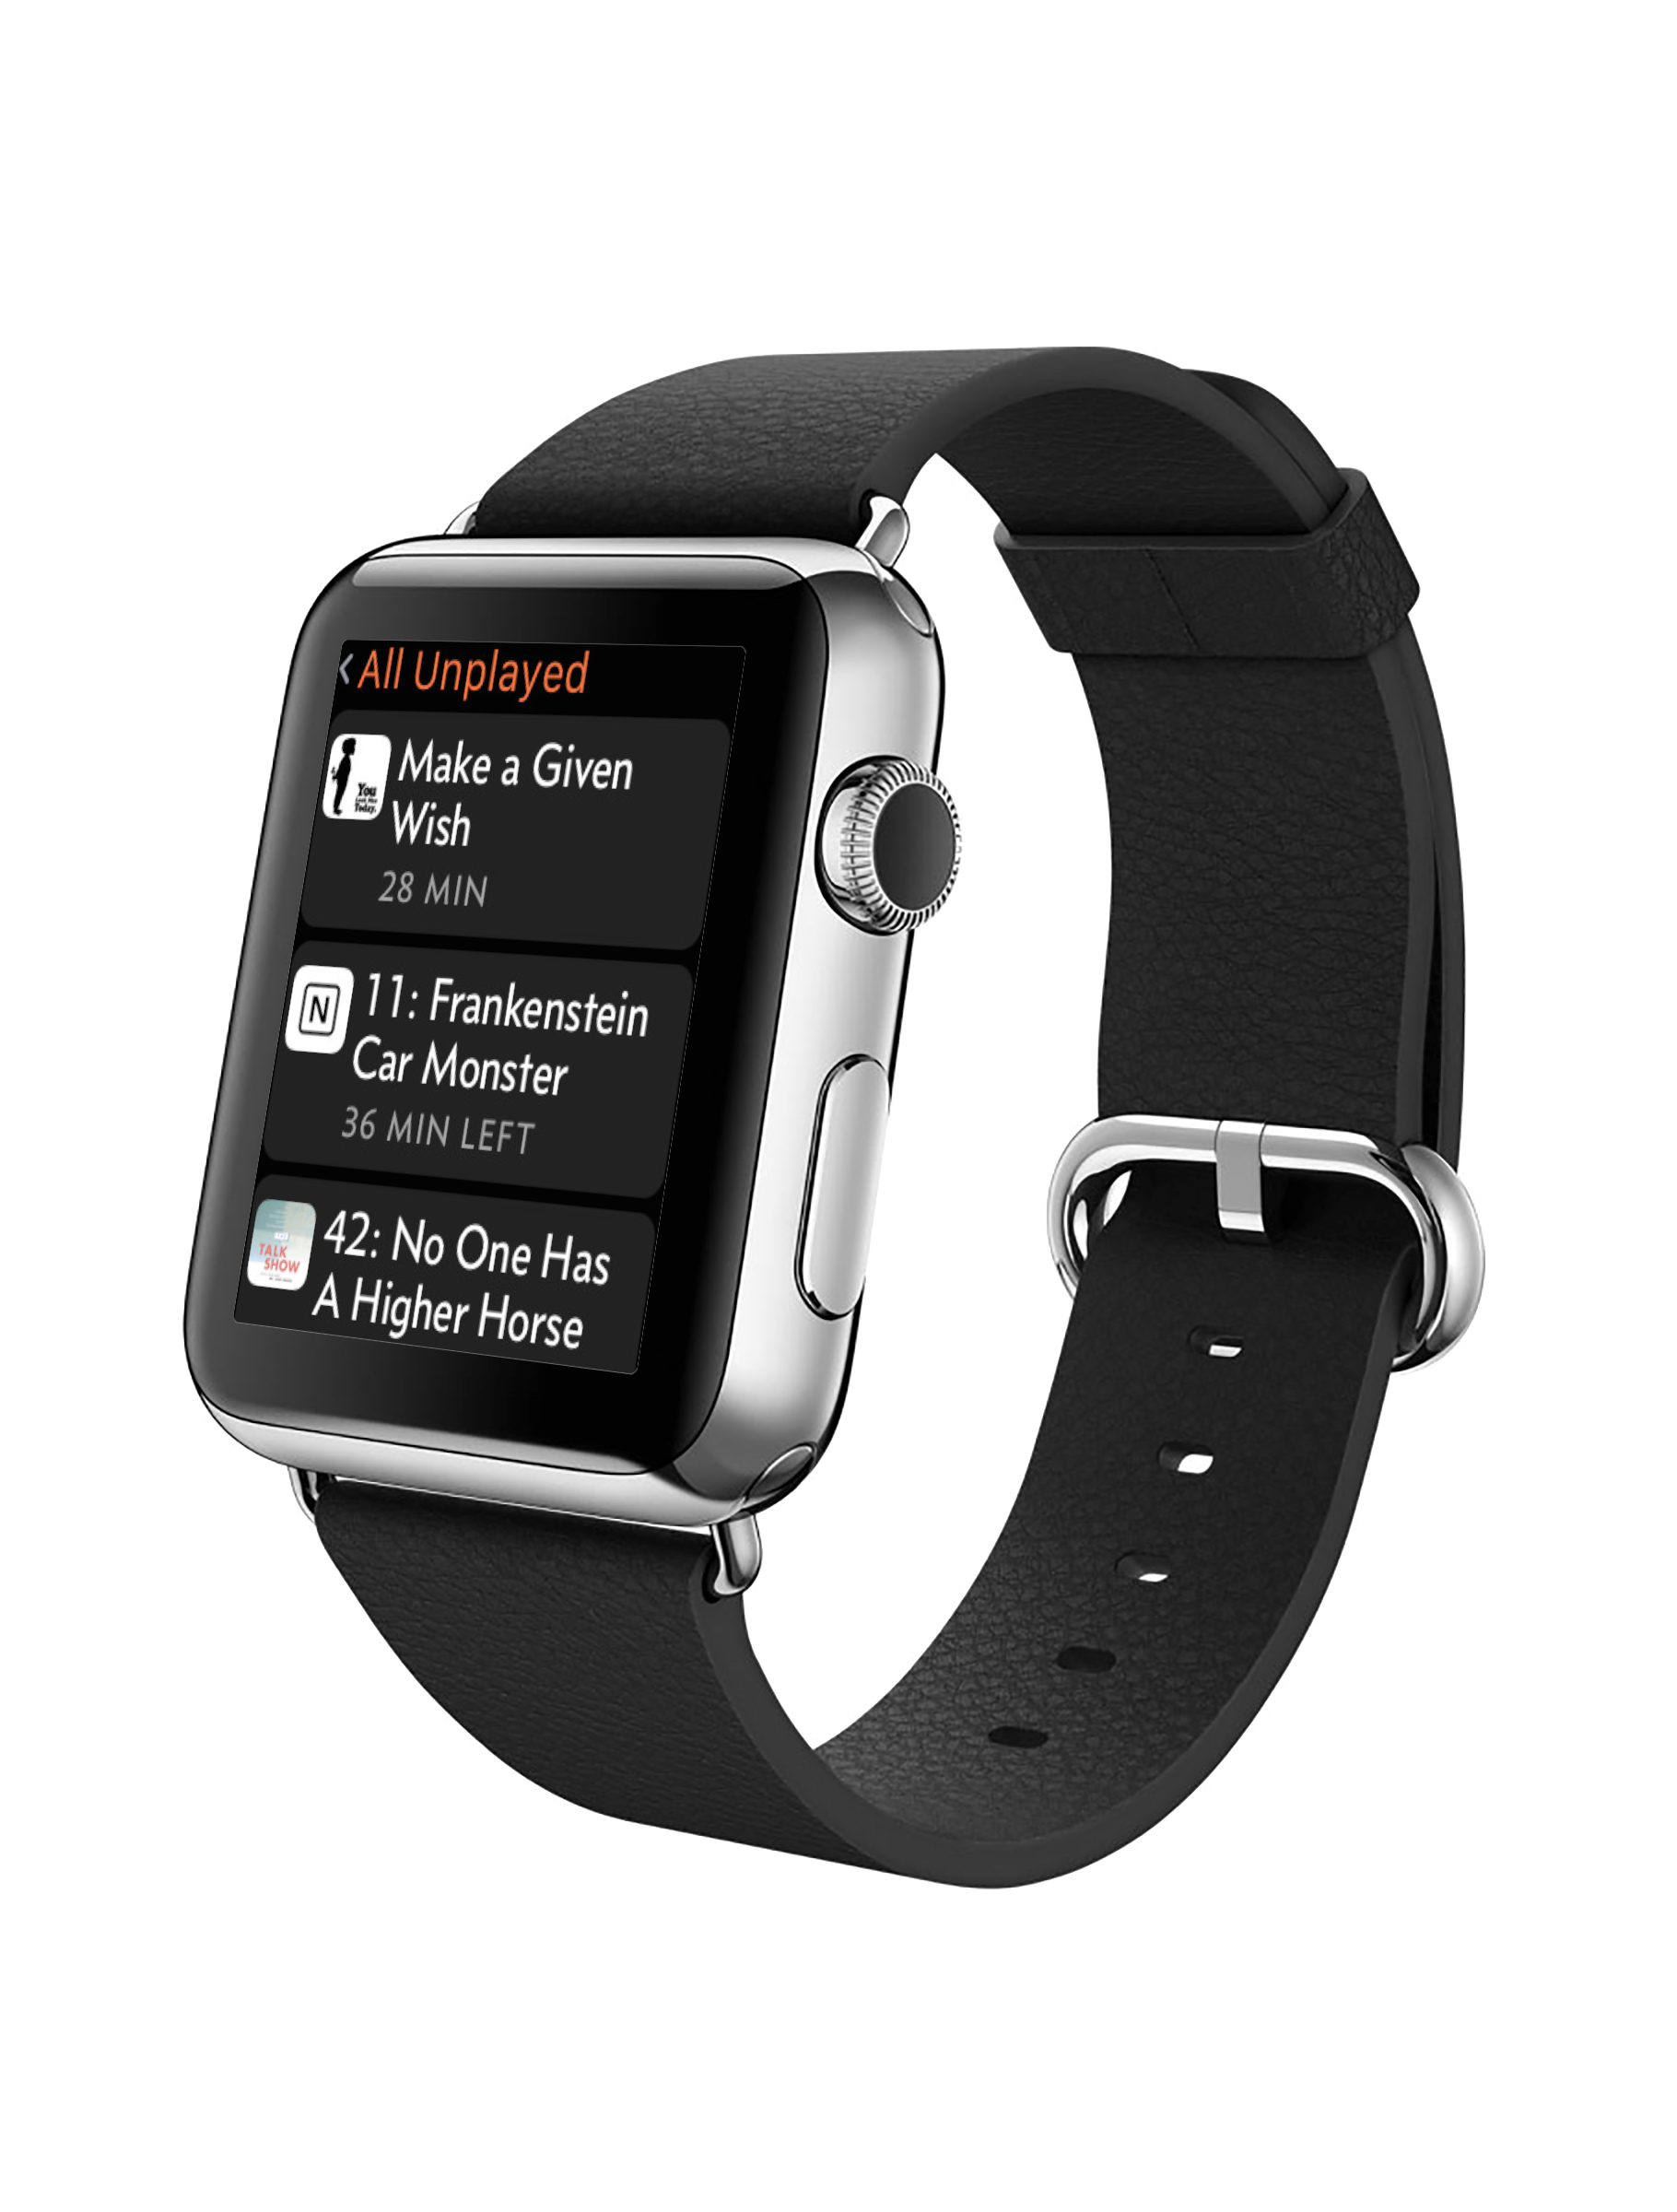 A first look at the popular podcast app Overcast on Apple Watch